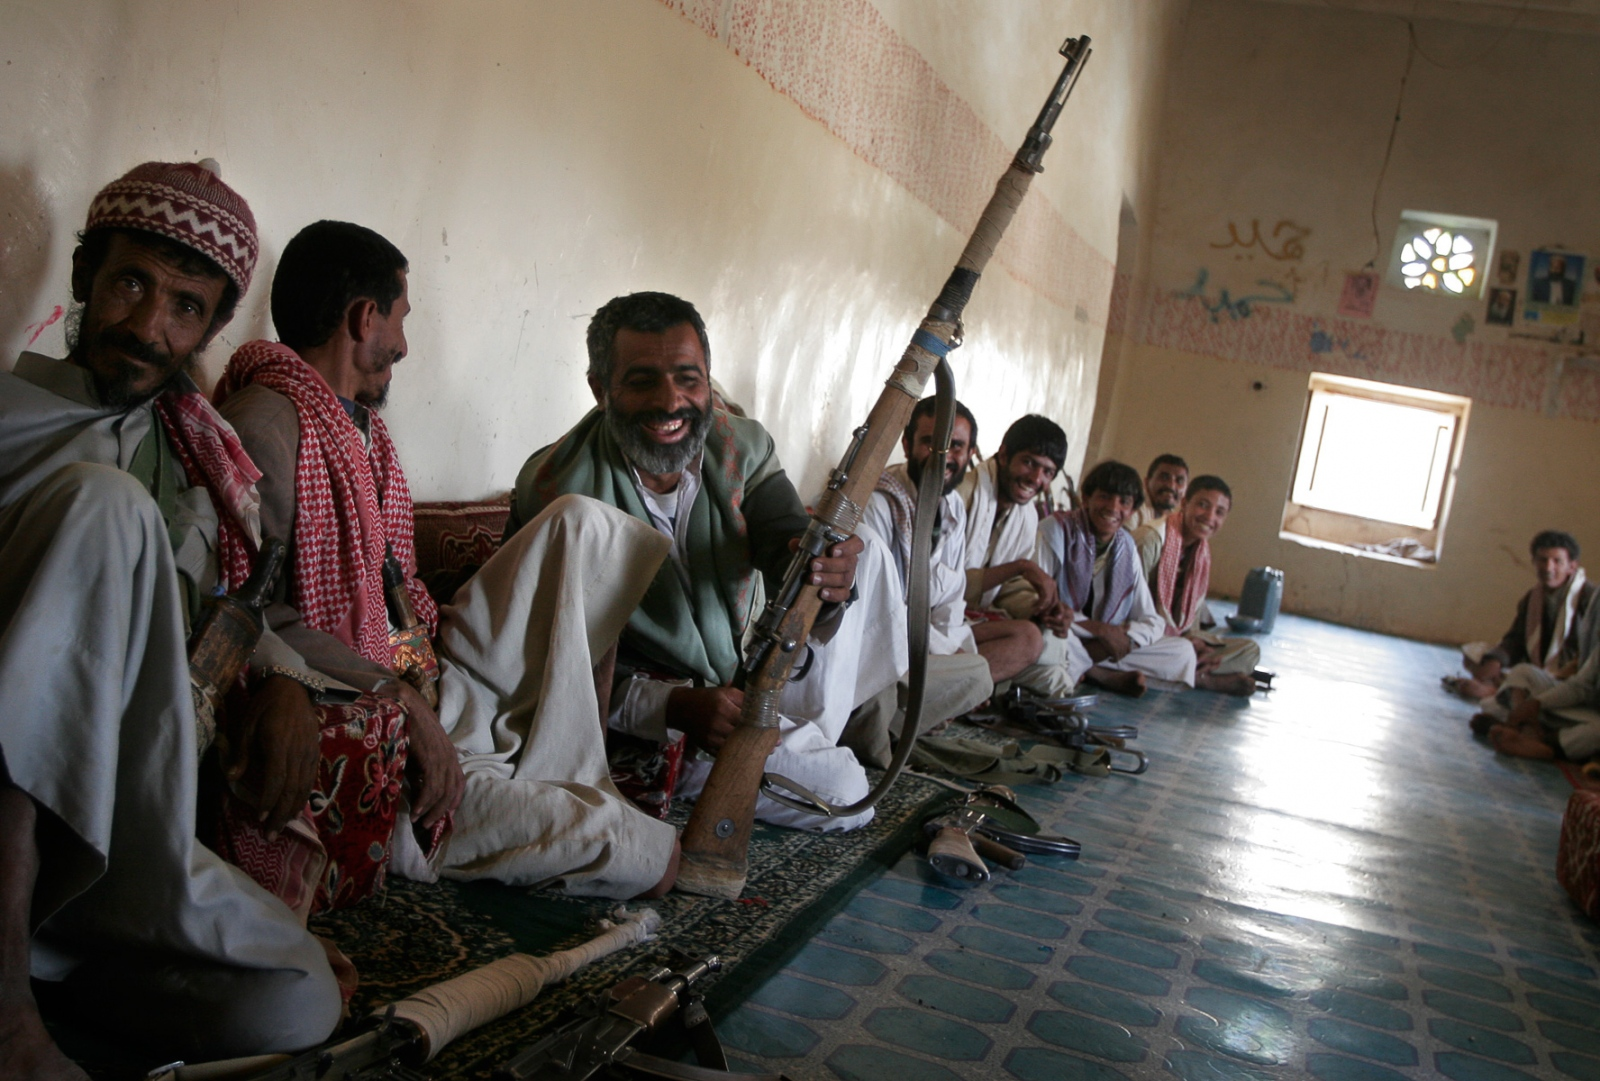 Tribesmen admire the sniper's rifle of Saleh Ali al-Hadj (far left) as they wait to meet and lunch with Sheik Rabea.